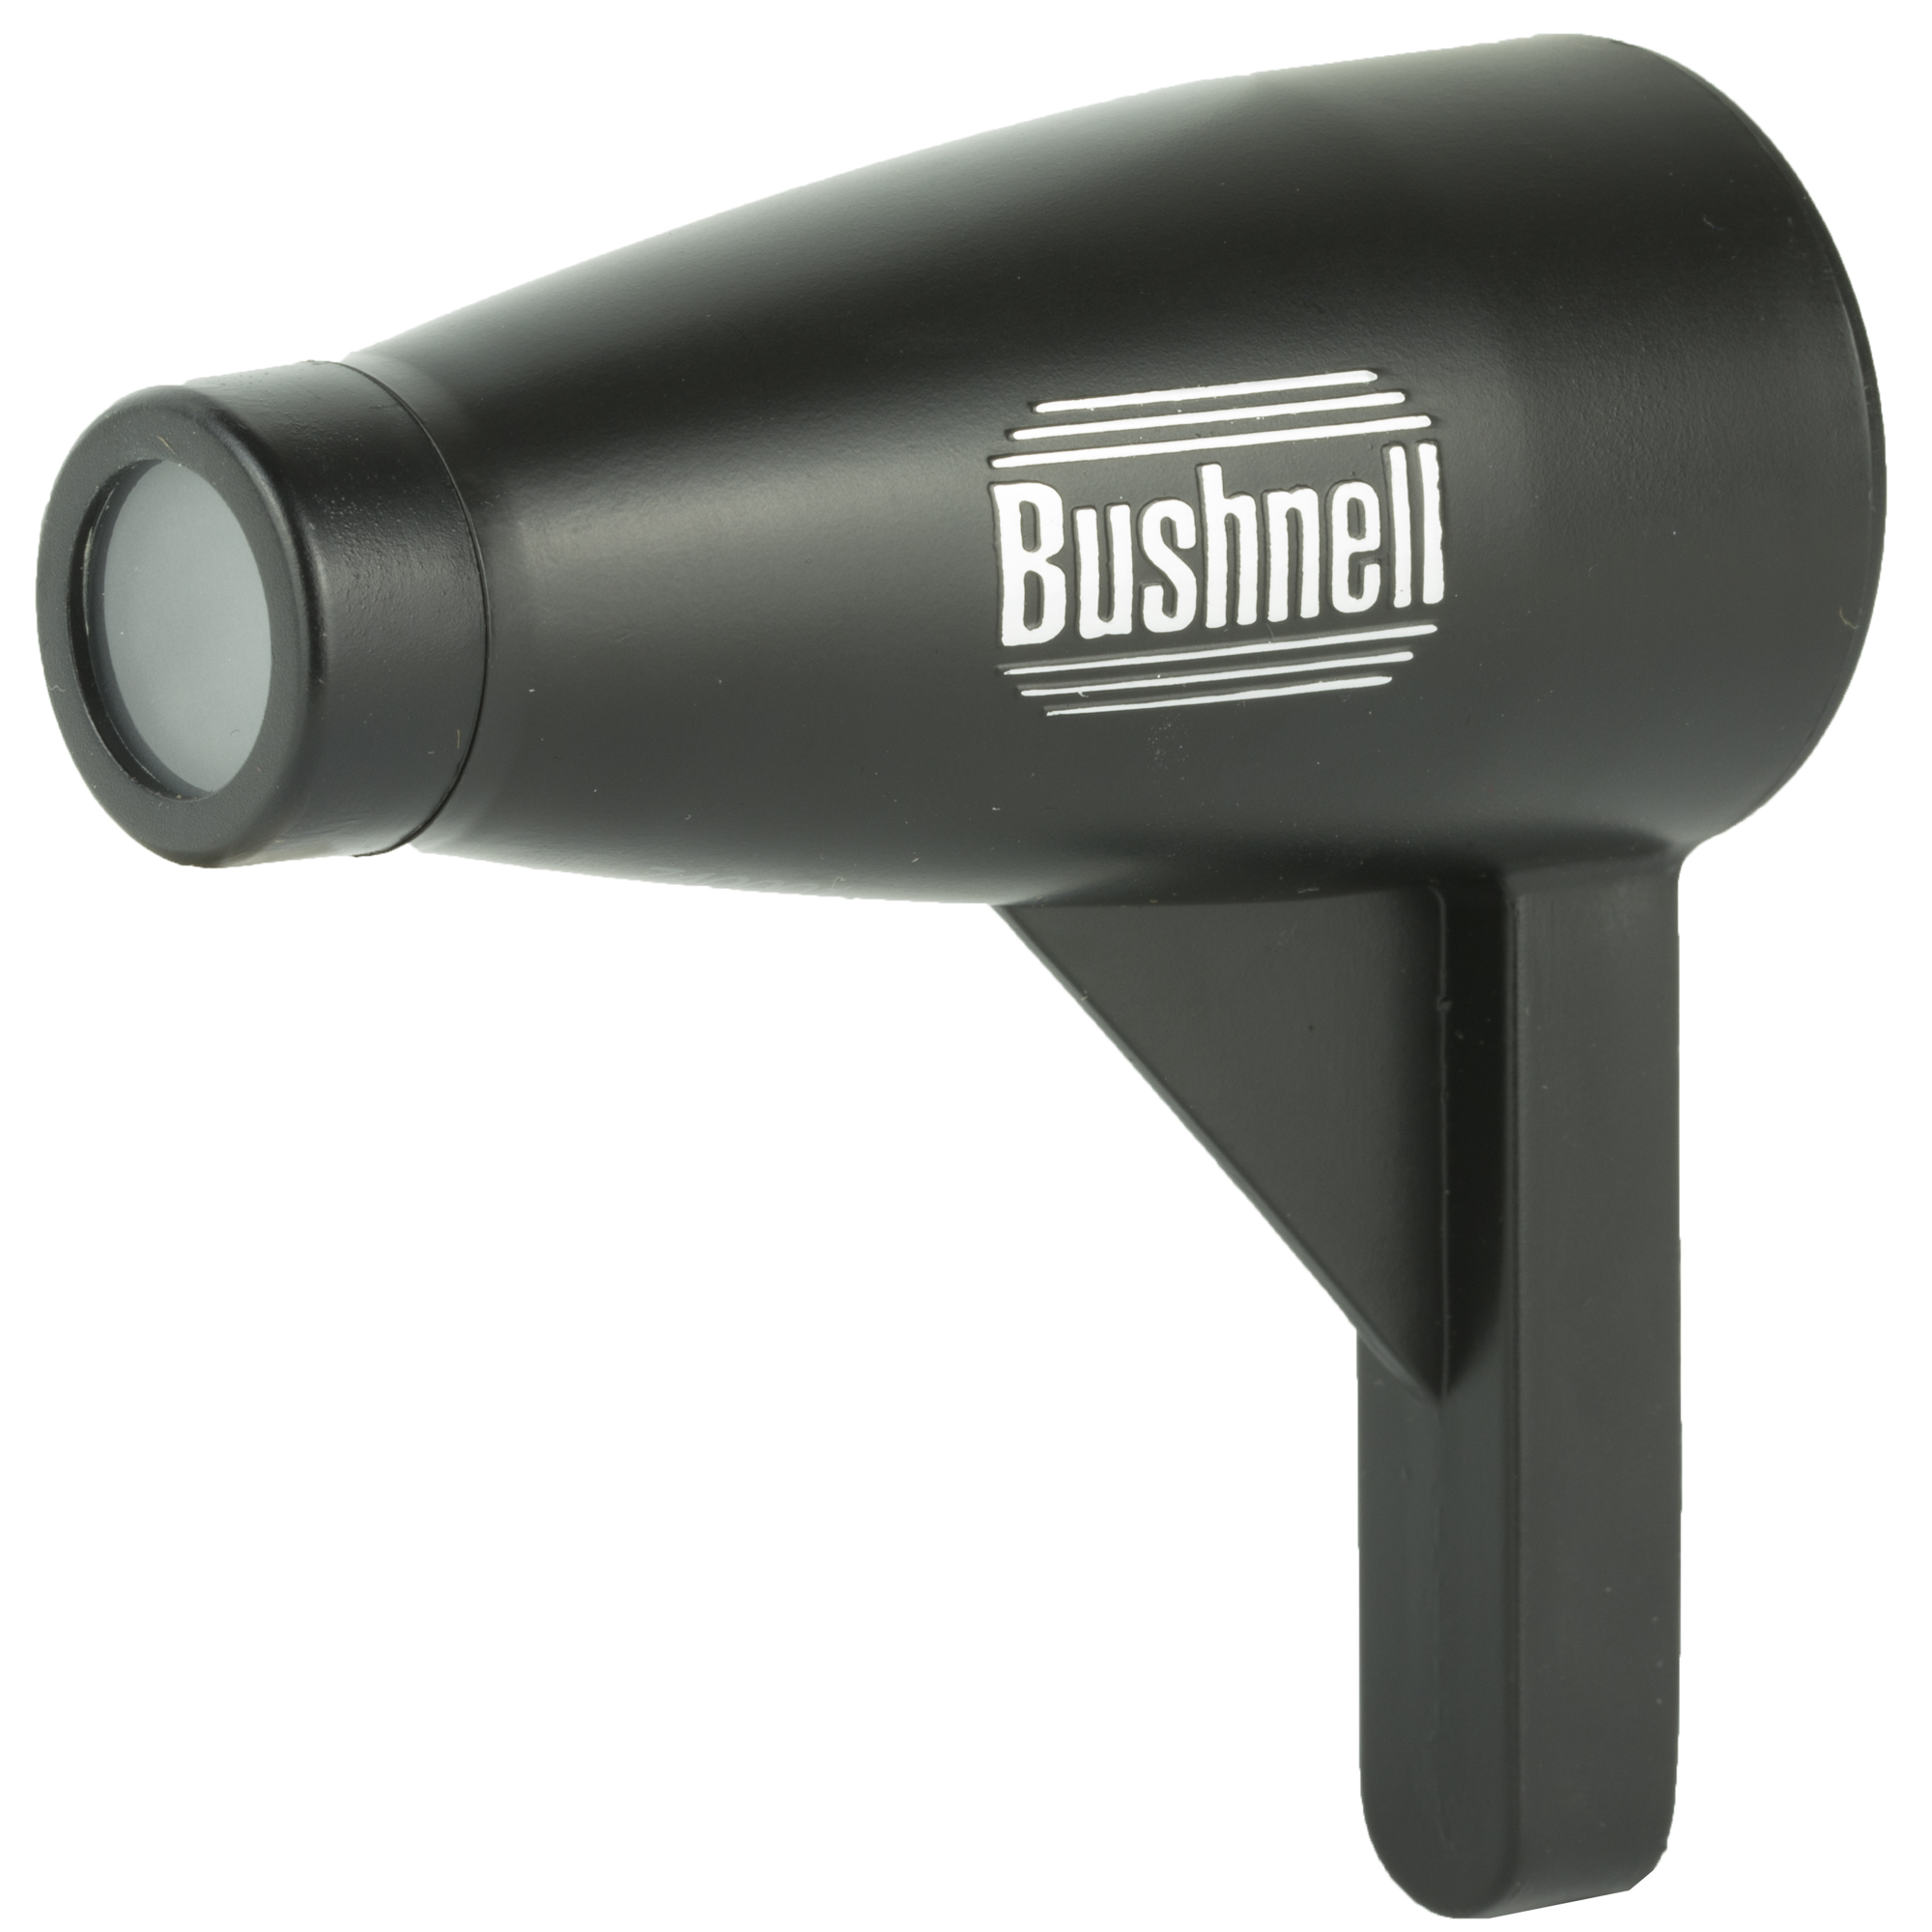 Bushnell Magnetic Boresight Riflescope Accessory 74-0001C - Works on all calibers and firearms. Revolutionary design eliminates the need for arbors. Magnetically attaches to the muzzle to facilitate a quick sighting in. Etched glass reticle.